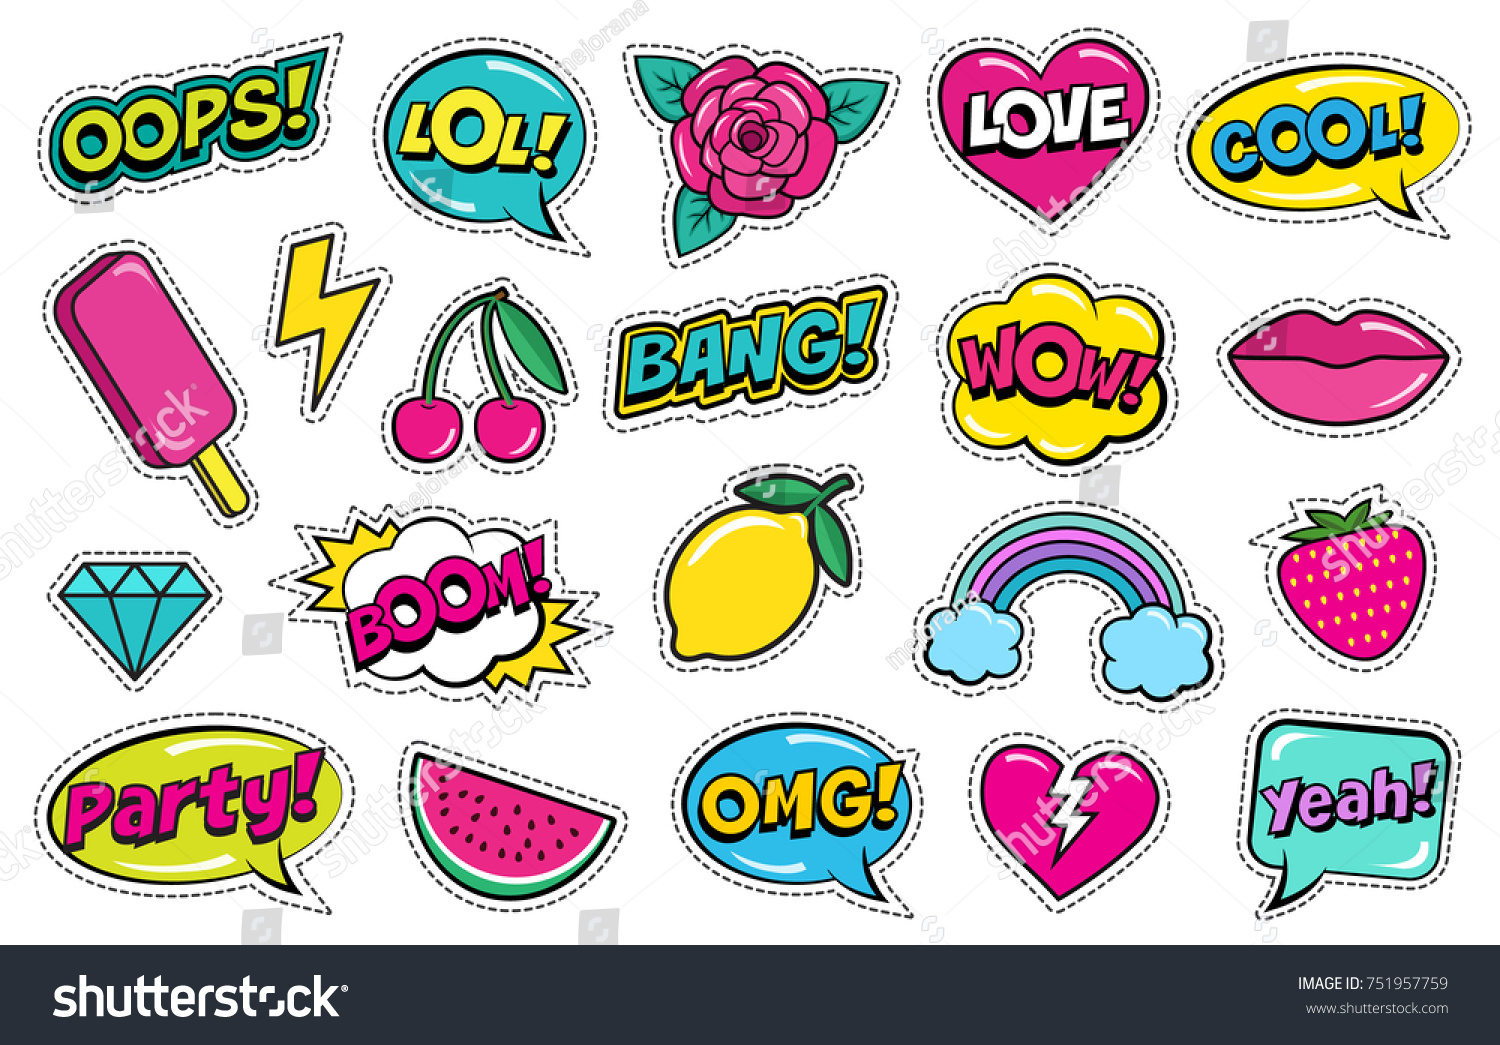 Modern cute colorful patch set on white background. Fashion patches of cherry, strawberry, watermelon, lips, rose flower, rainbow, hearts, comic bubbles etc. Cartoon 80s-90s style. Vector illustration #751957759